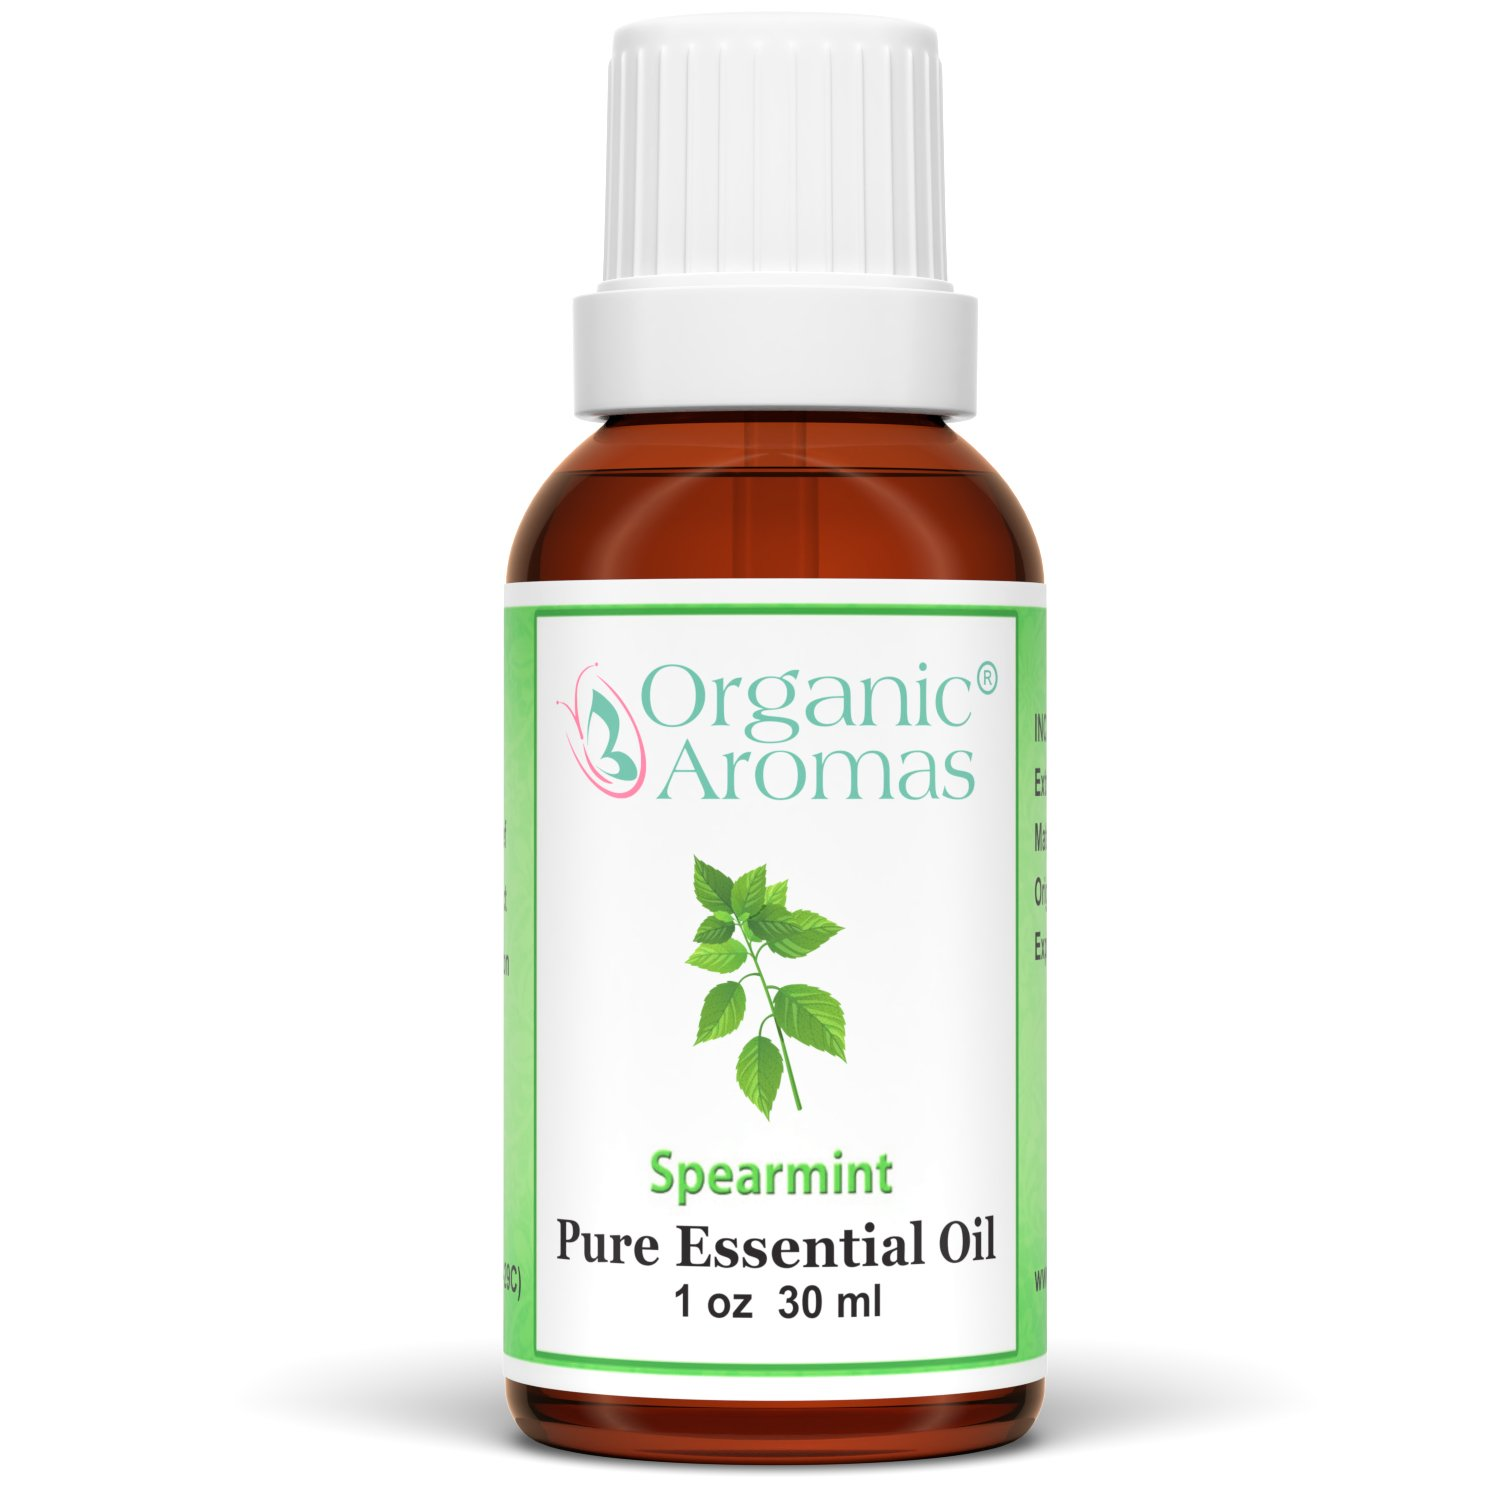 Spearmint Essential Oil 100% Pure for Professional Aromatherapy - Therapeutic Grade - Works well with Organic Aroma Diffusers - 30 ml bottles